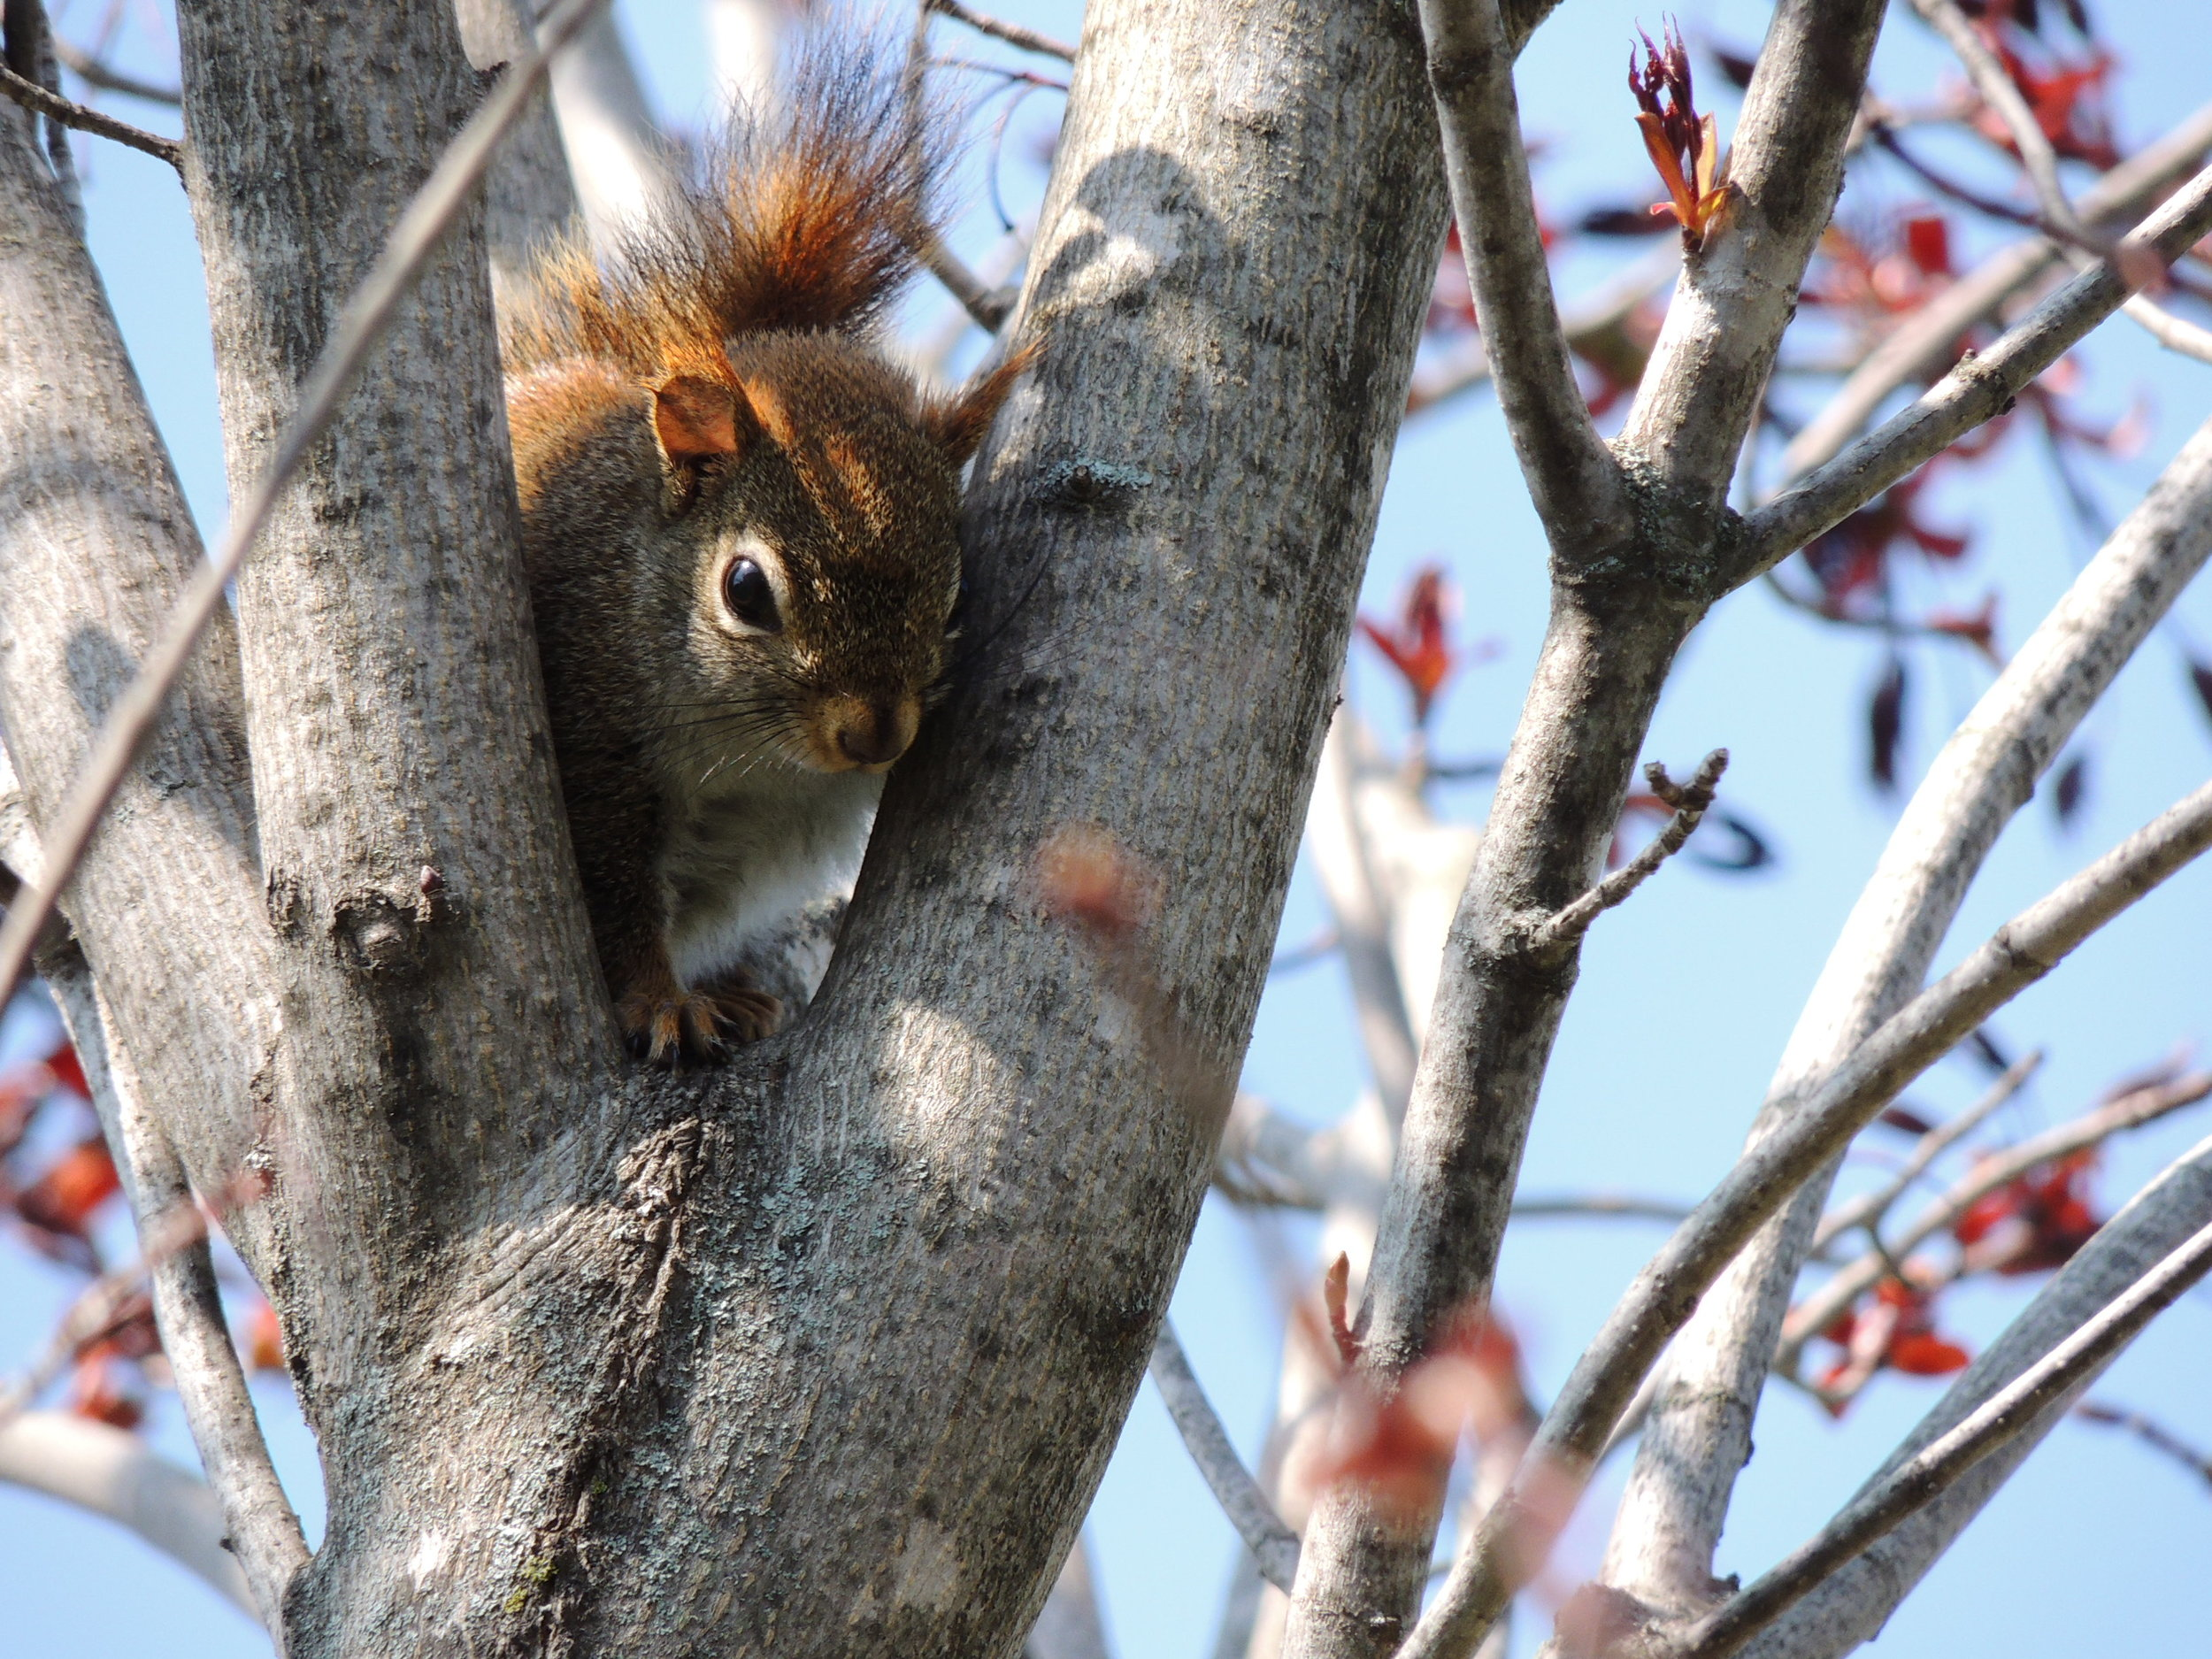 A red squirrel waiting as the family dog circles the tree. Hillsburgh, Ontario.